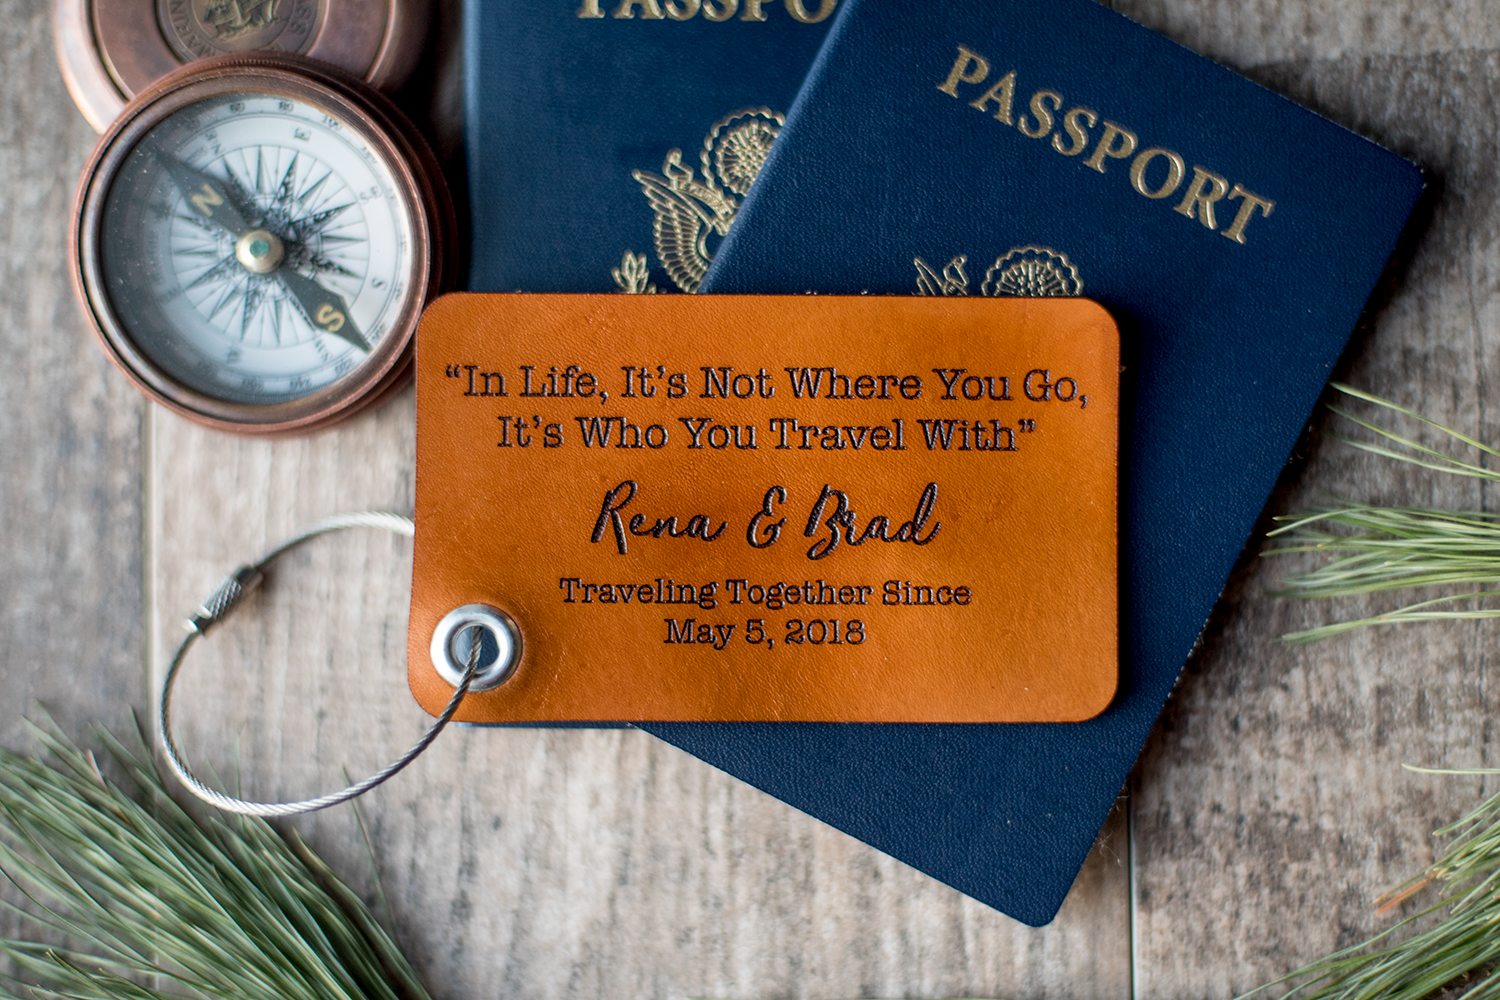 Custom Leather Luggage Tags – The beginning